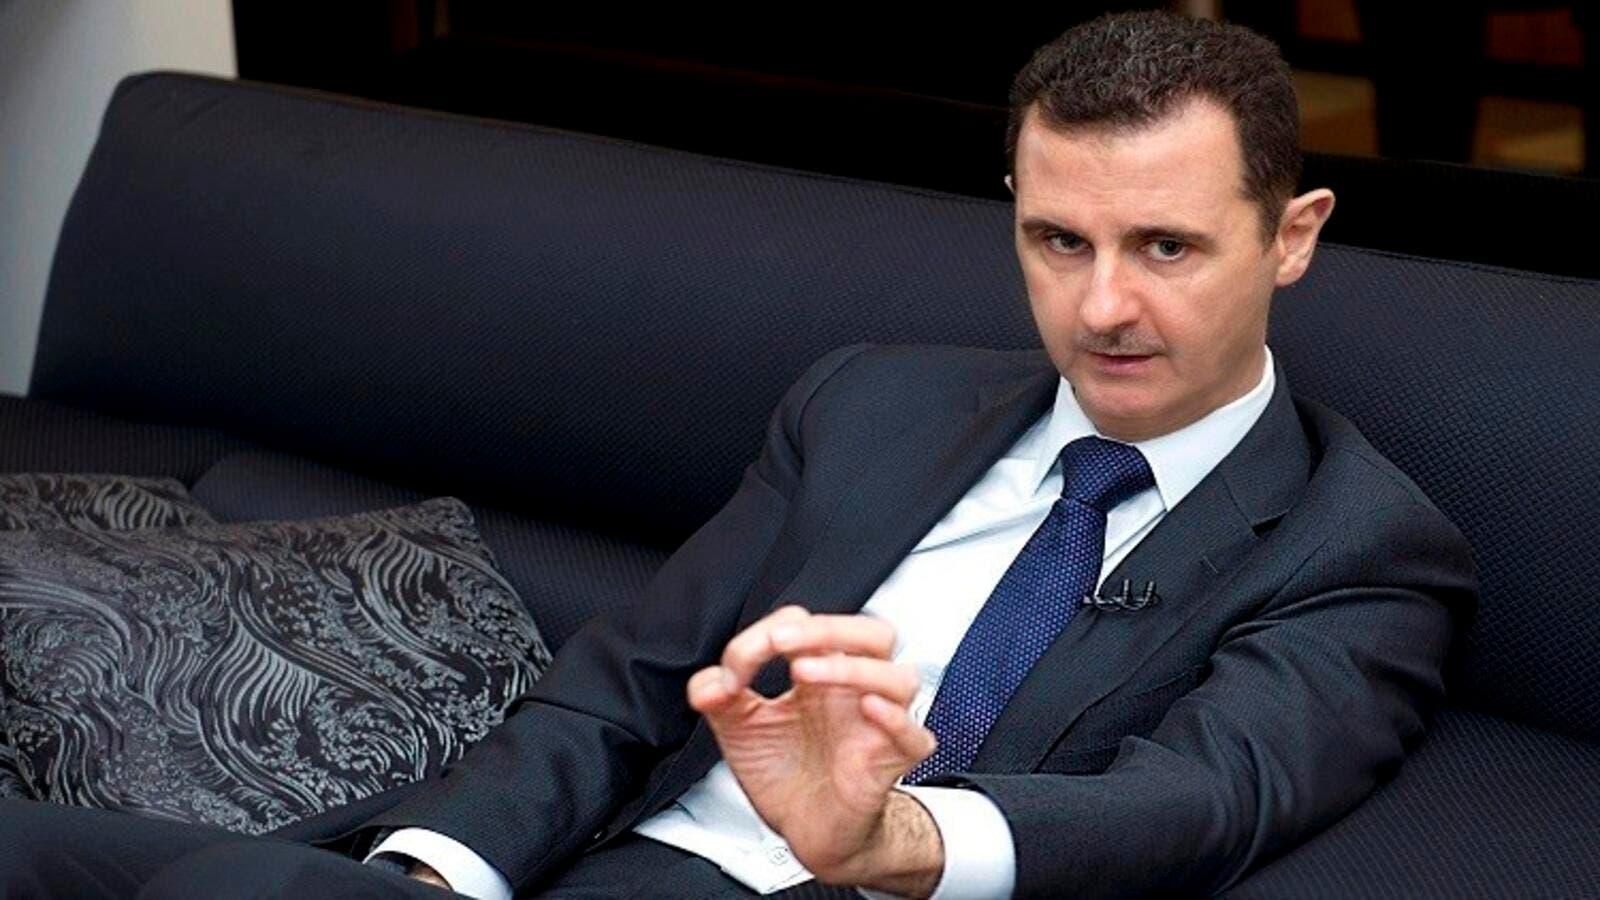 The Assad regime was one of several governments and lawmakers in the Middle East to address Tehran's nuclear framework deal with world powers, which has drawn criticism most prominently from Israel's Benjamin Netanyahu and Iranian hard-liners. (AFP/File)